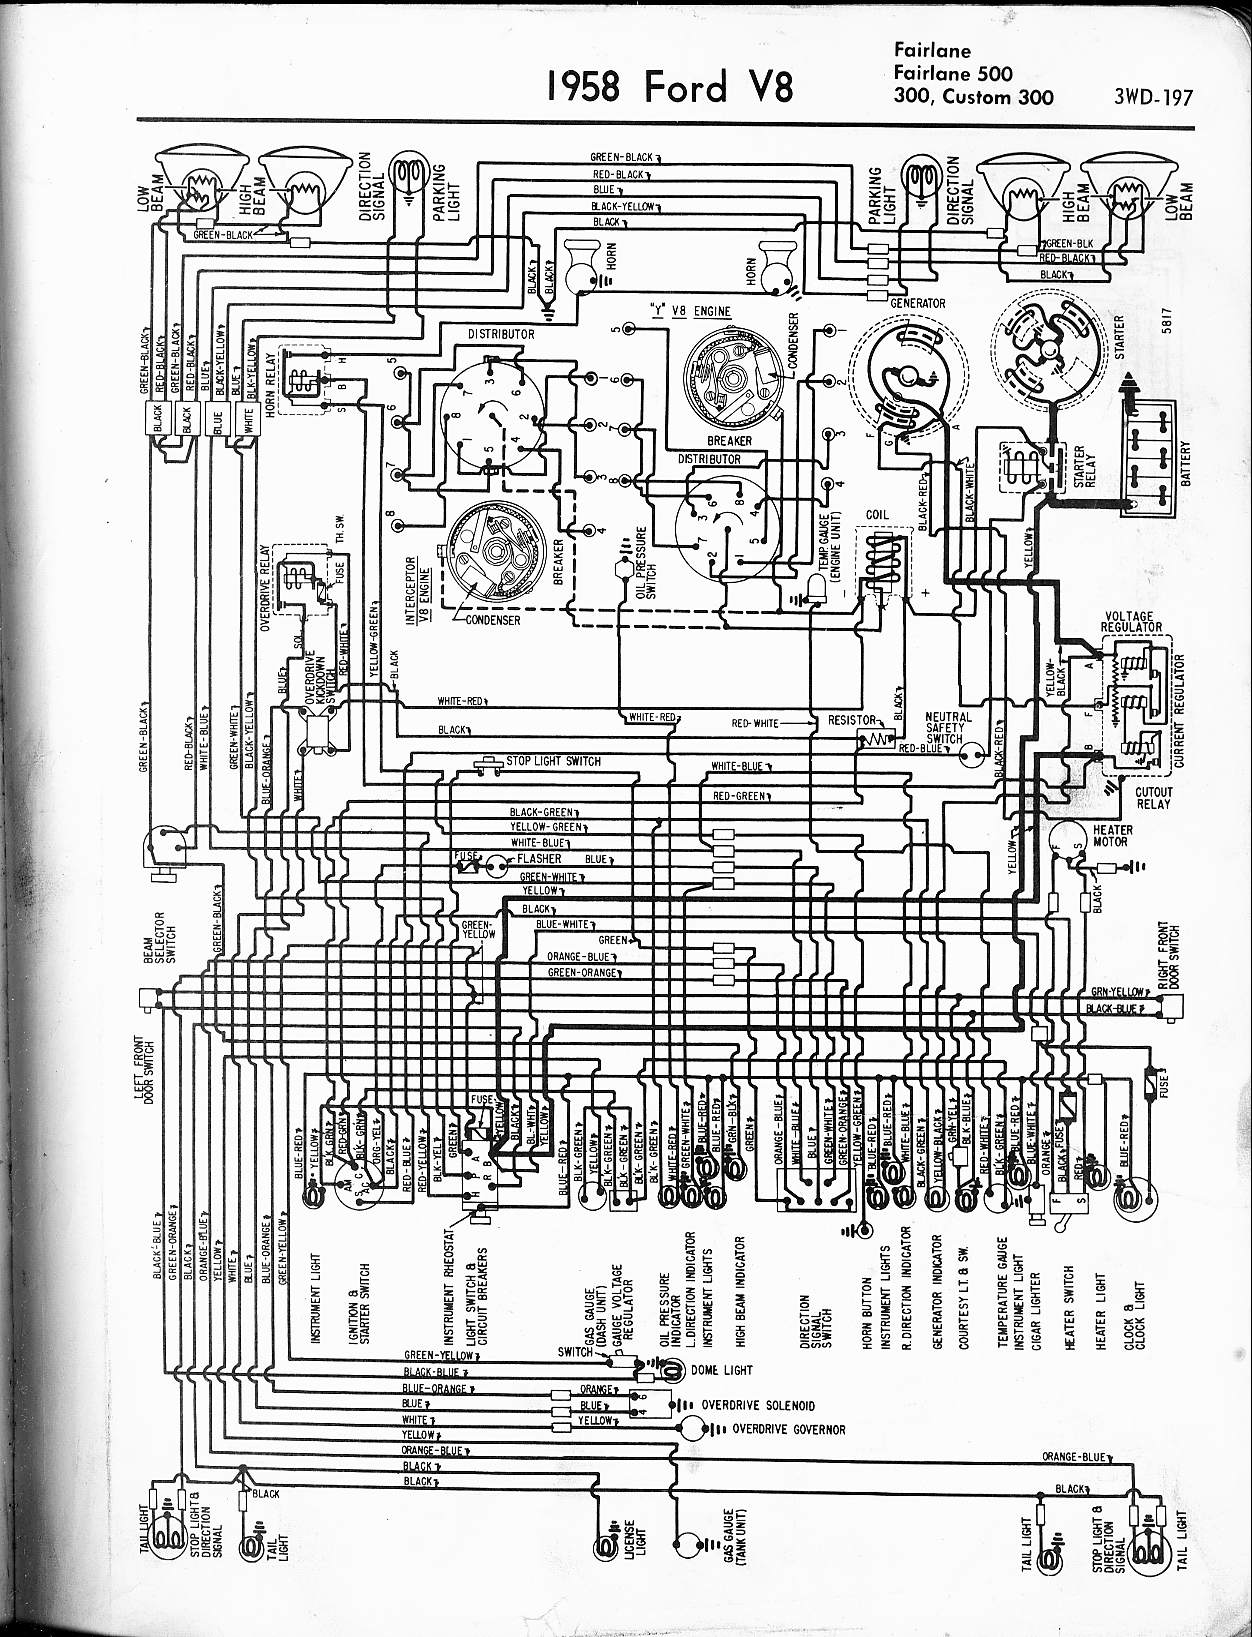 MWire5765 197 57 65 ford wiring diagrams ford wiring schematics at eliteediting.co